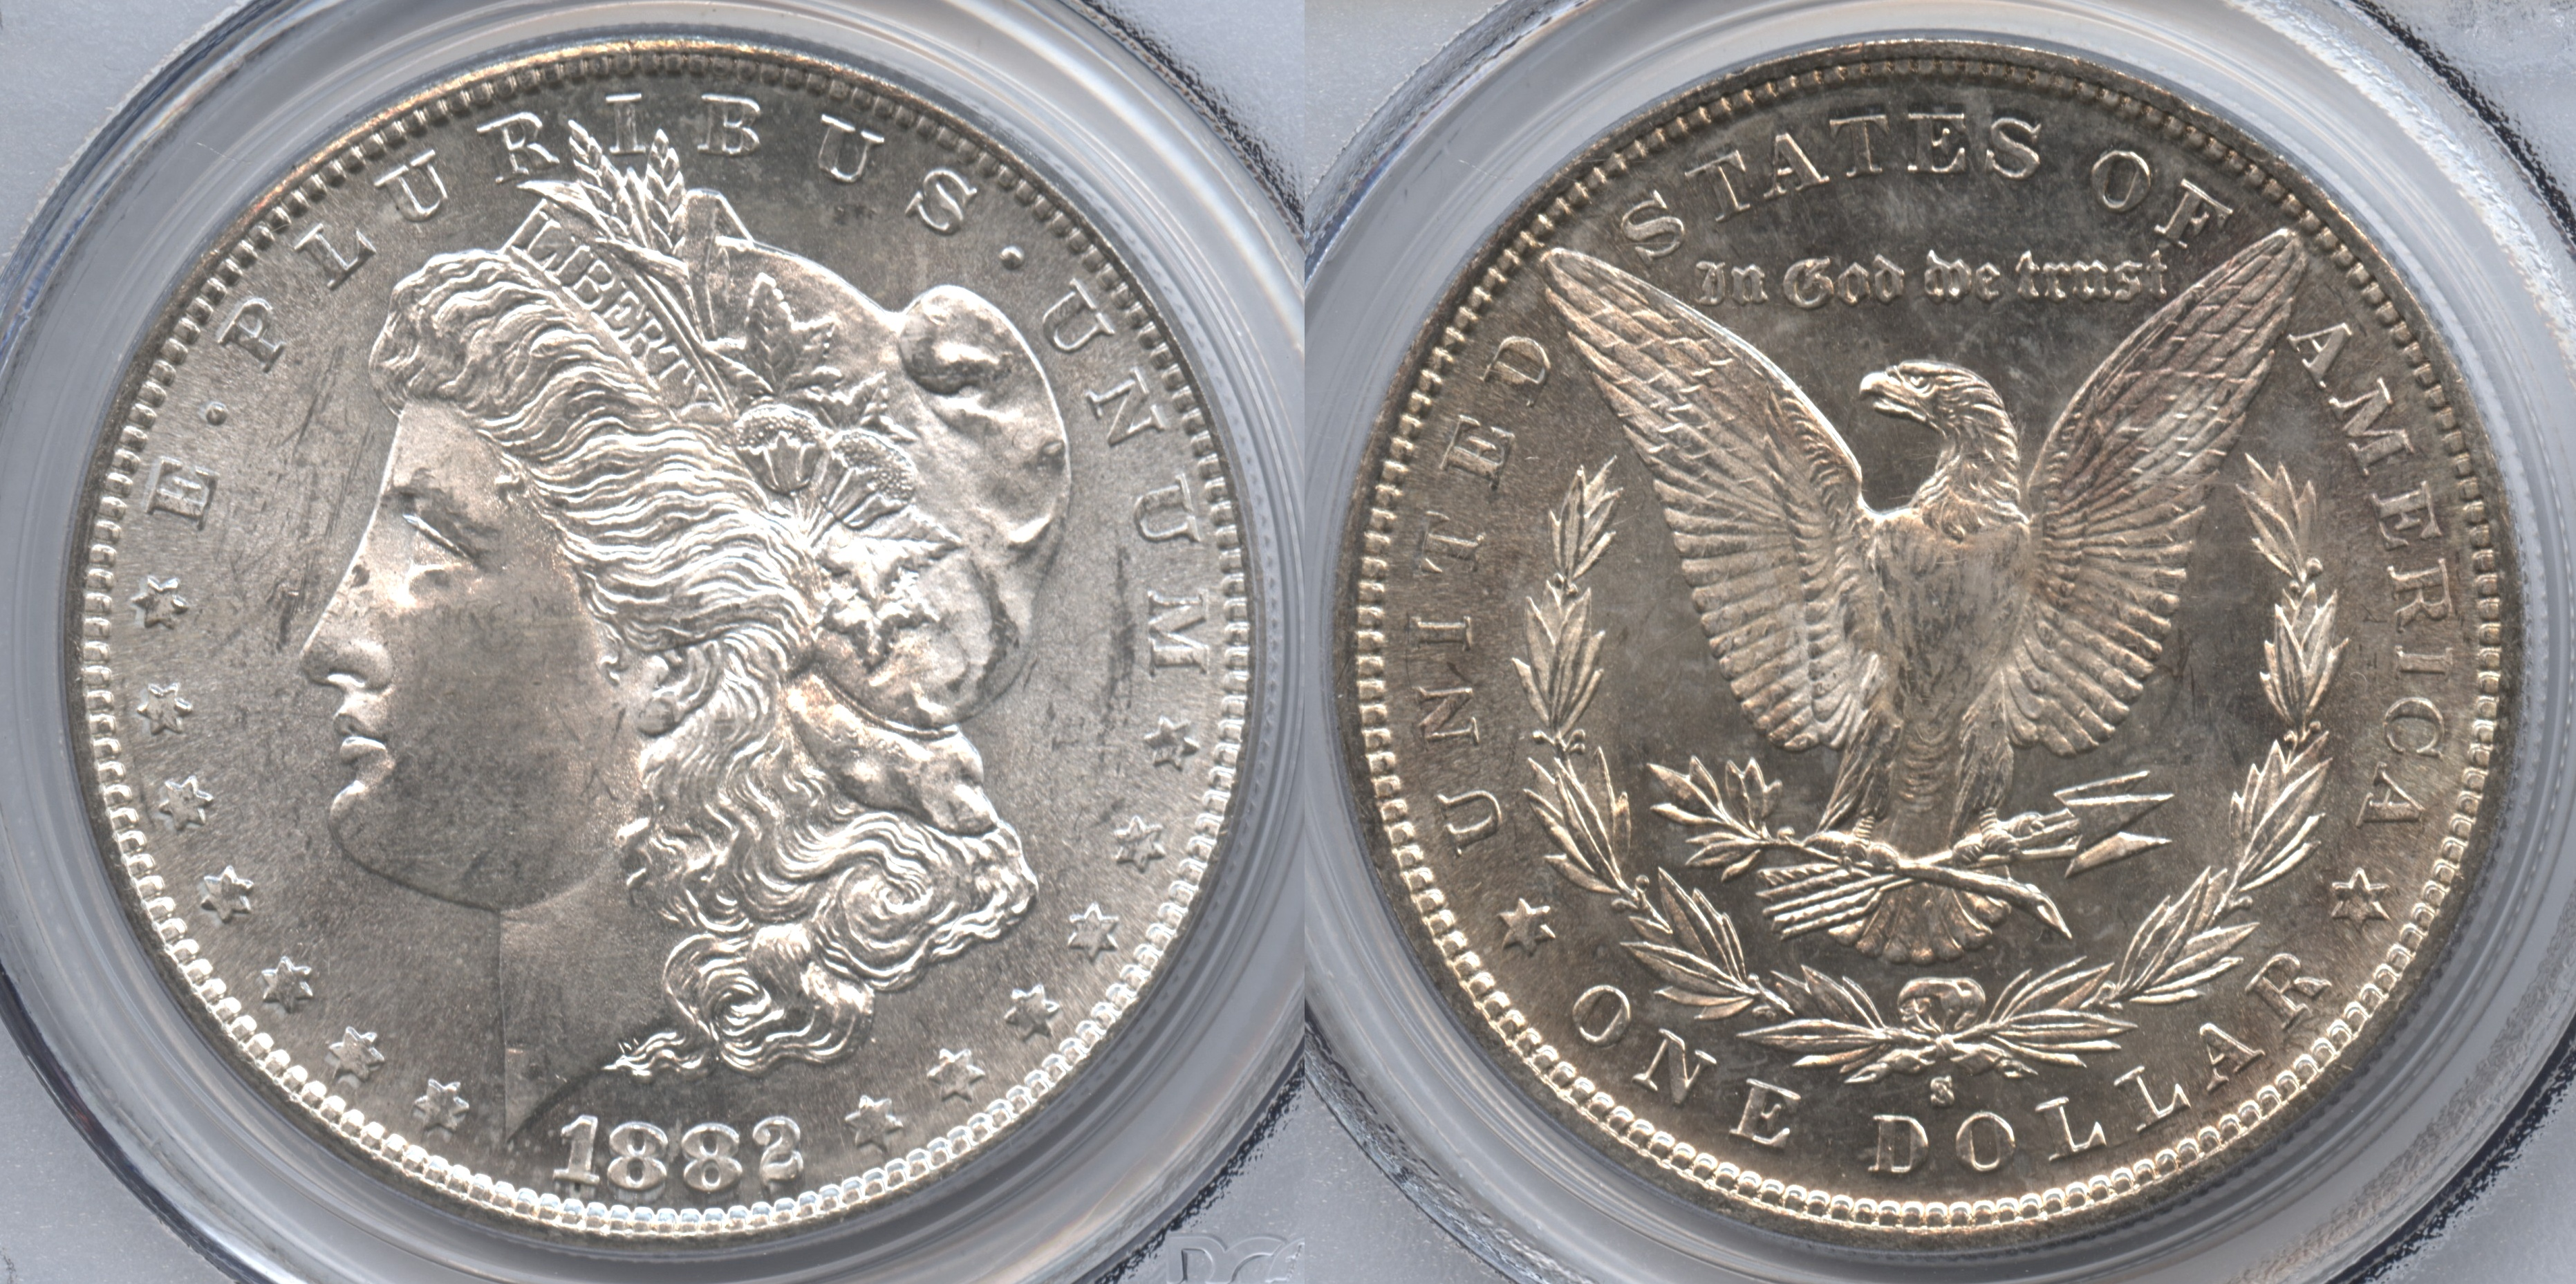 1882-S Morgan Silver Dollar PCGS MS-64 #a VAM-5 Doubled Date